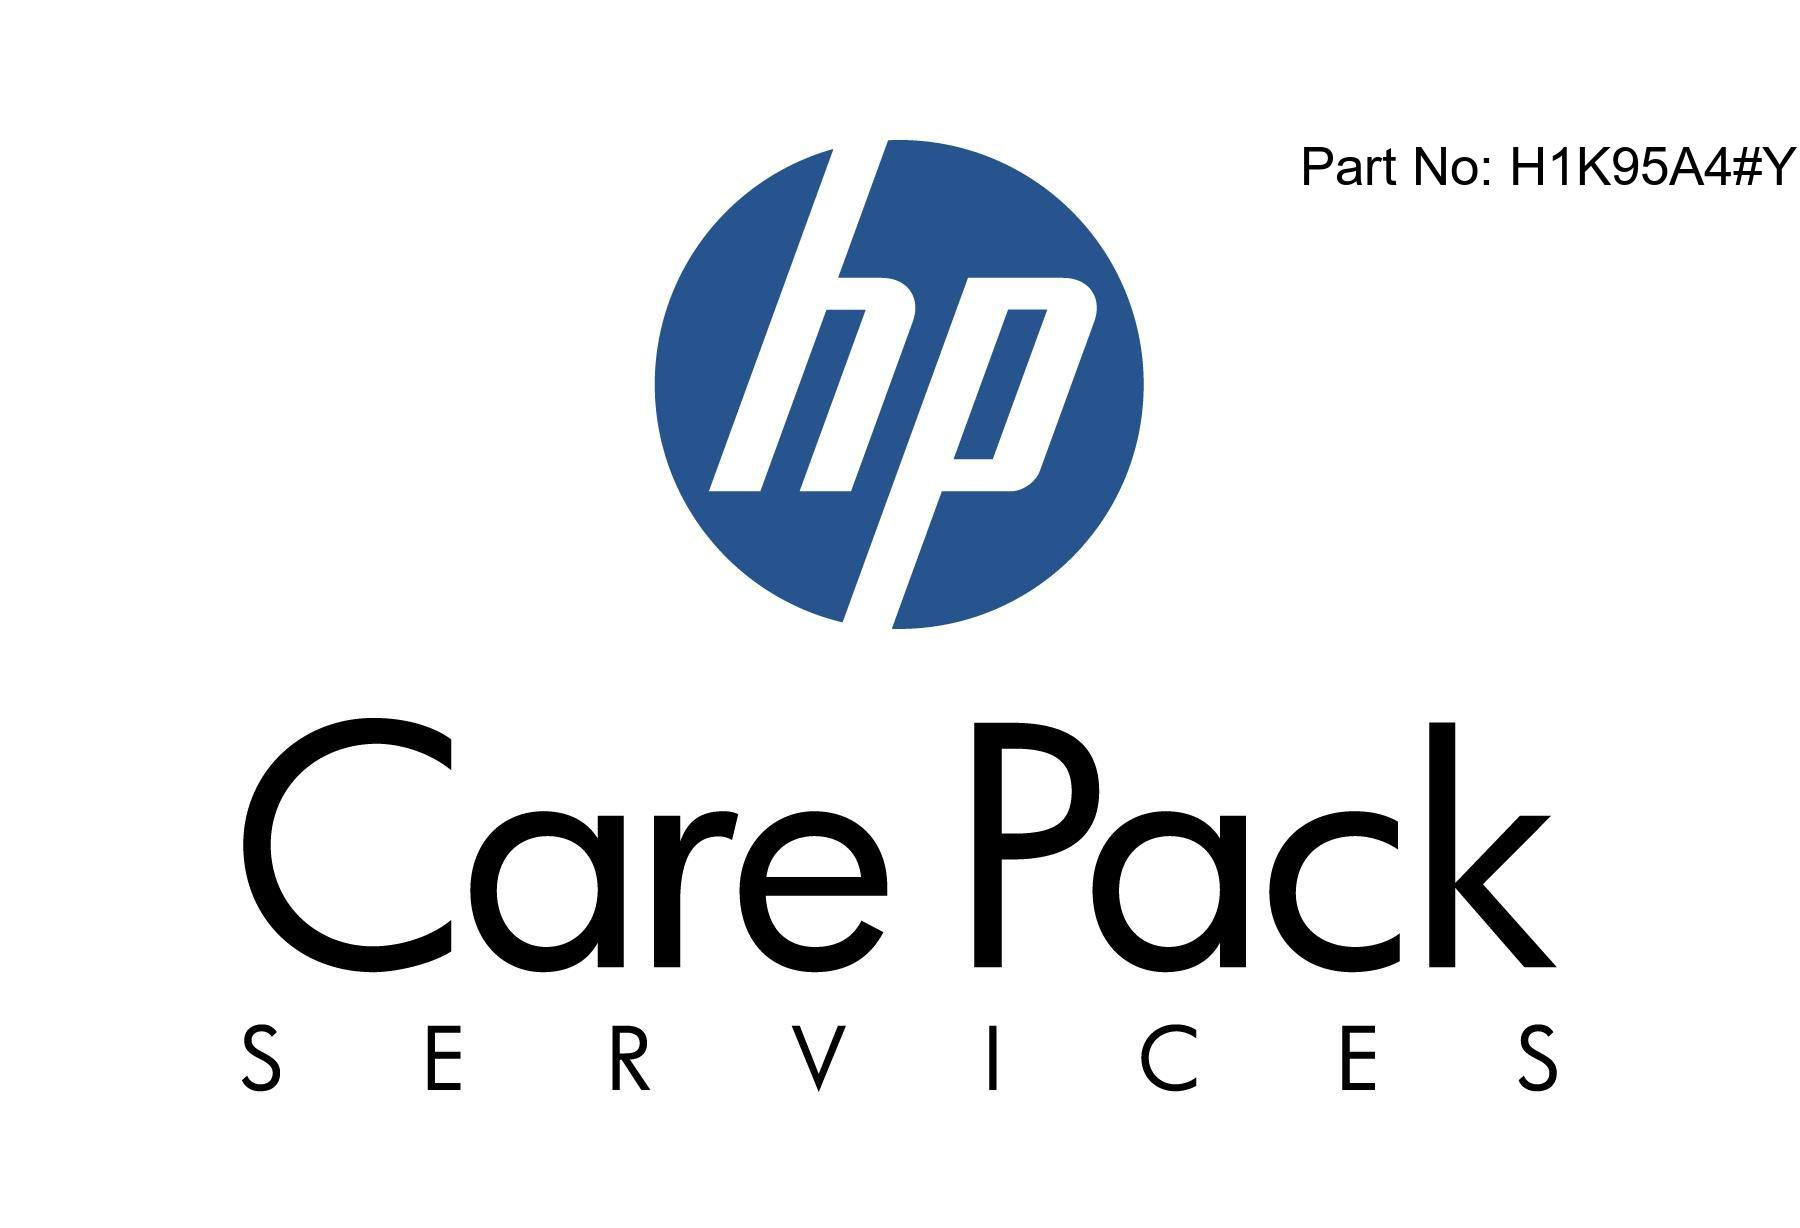 Proactive Care Call-To-Repair Service with Defective Media Retention - Technical support - for HPE XP7 Continuous Access to Three Data Center High Availability - 1 TB capacity - 101-250 TB - phone consulting - 4 years - 24x7 - response time: 2 h